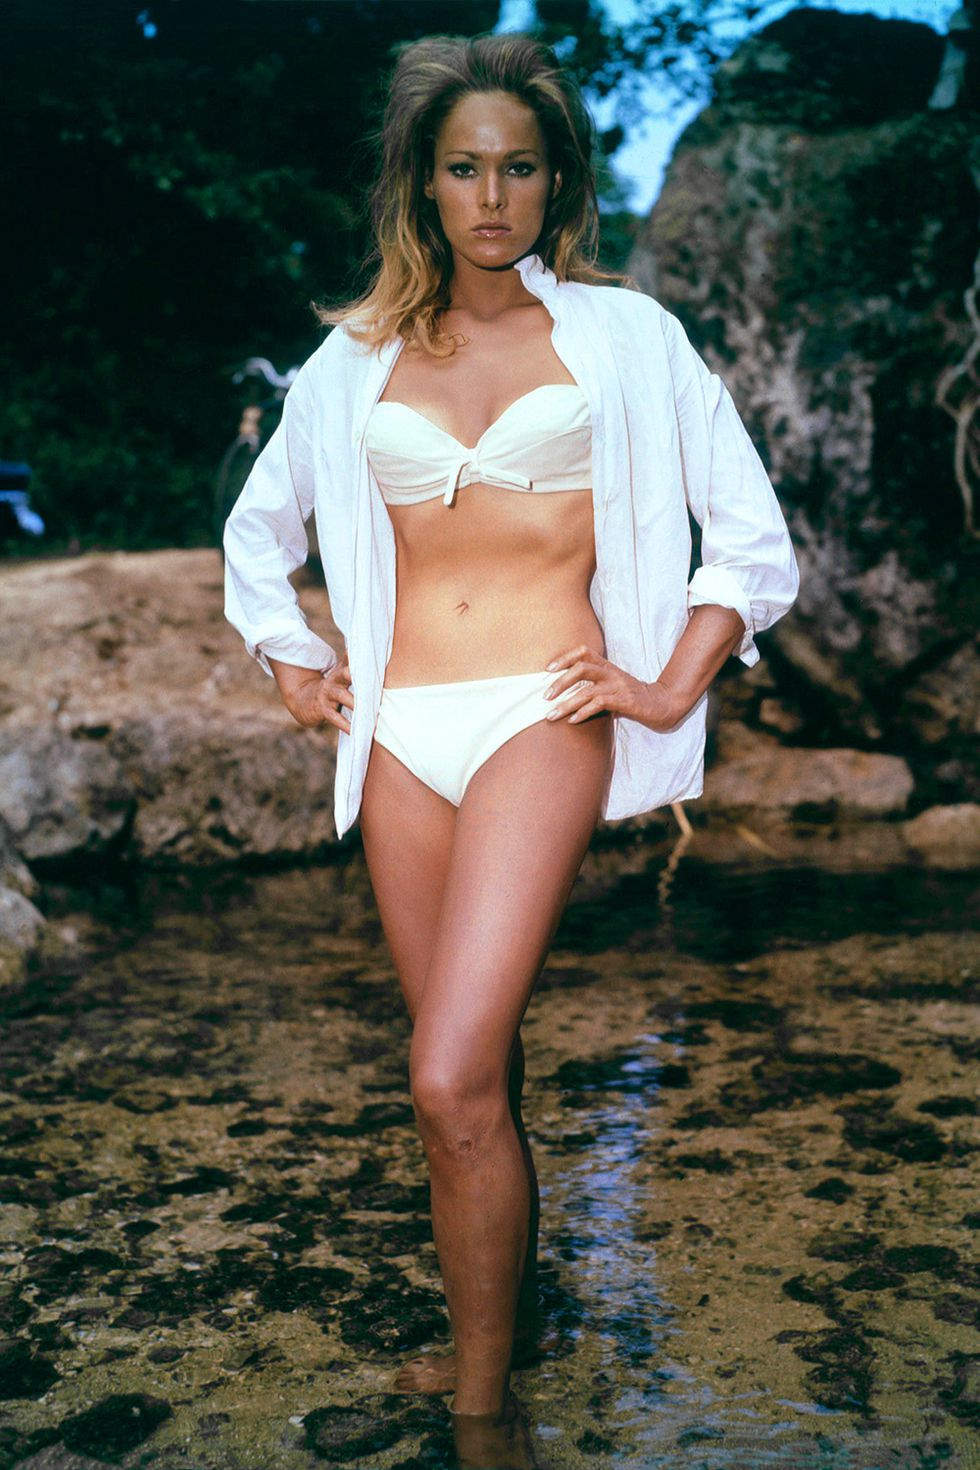 hbz-iconic-swimsuits-in-movies-ursula-andress-dr-no-1527791201